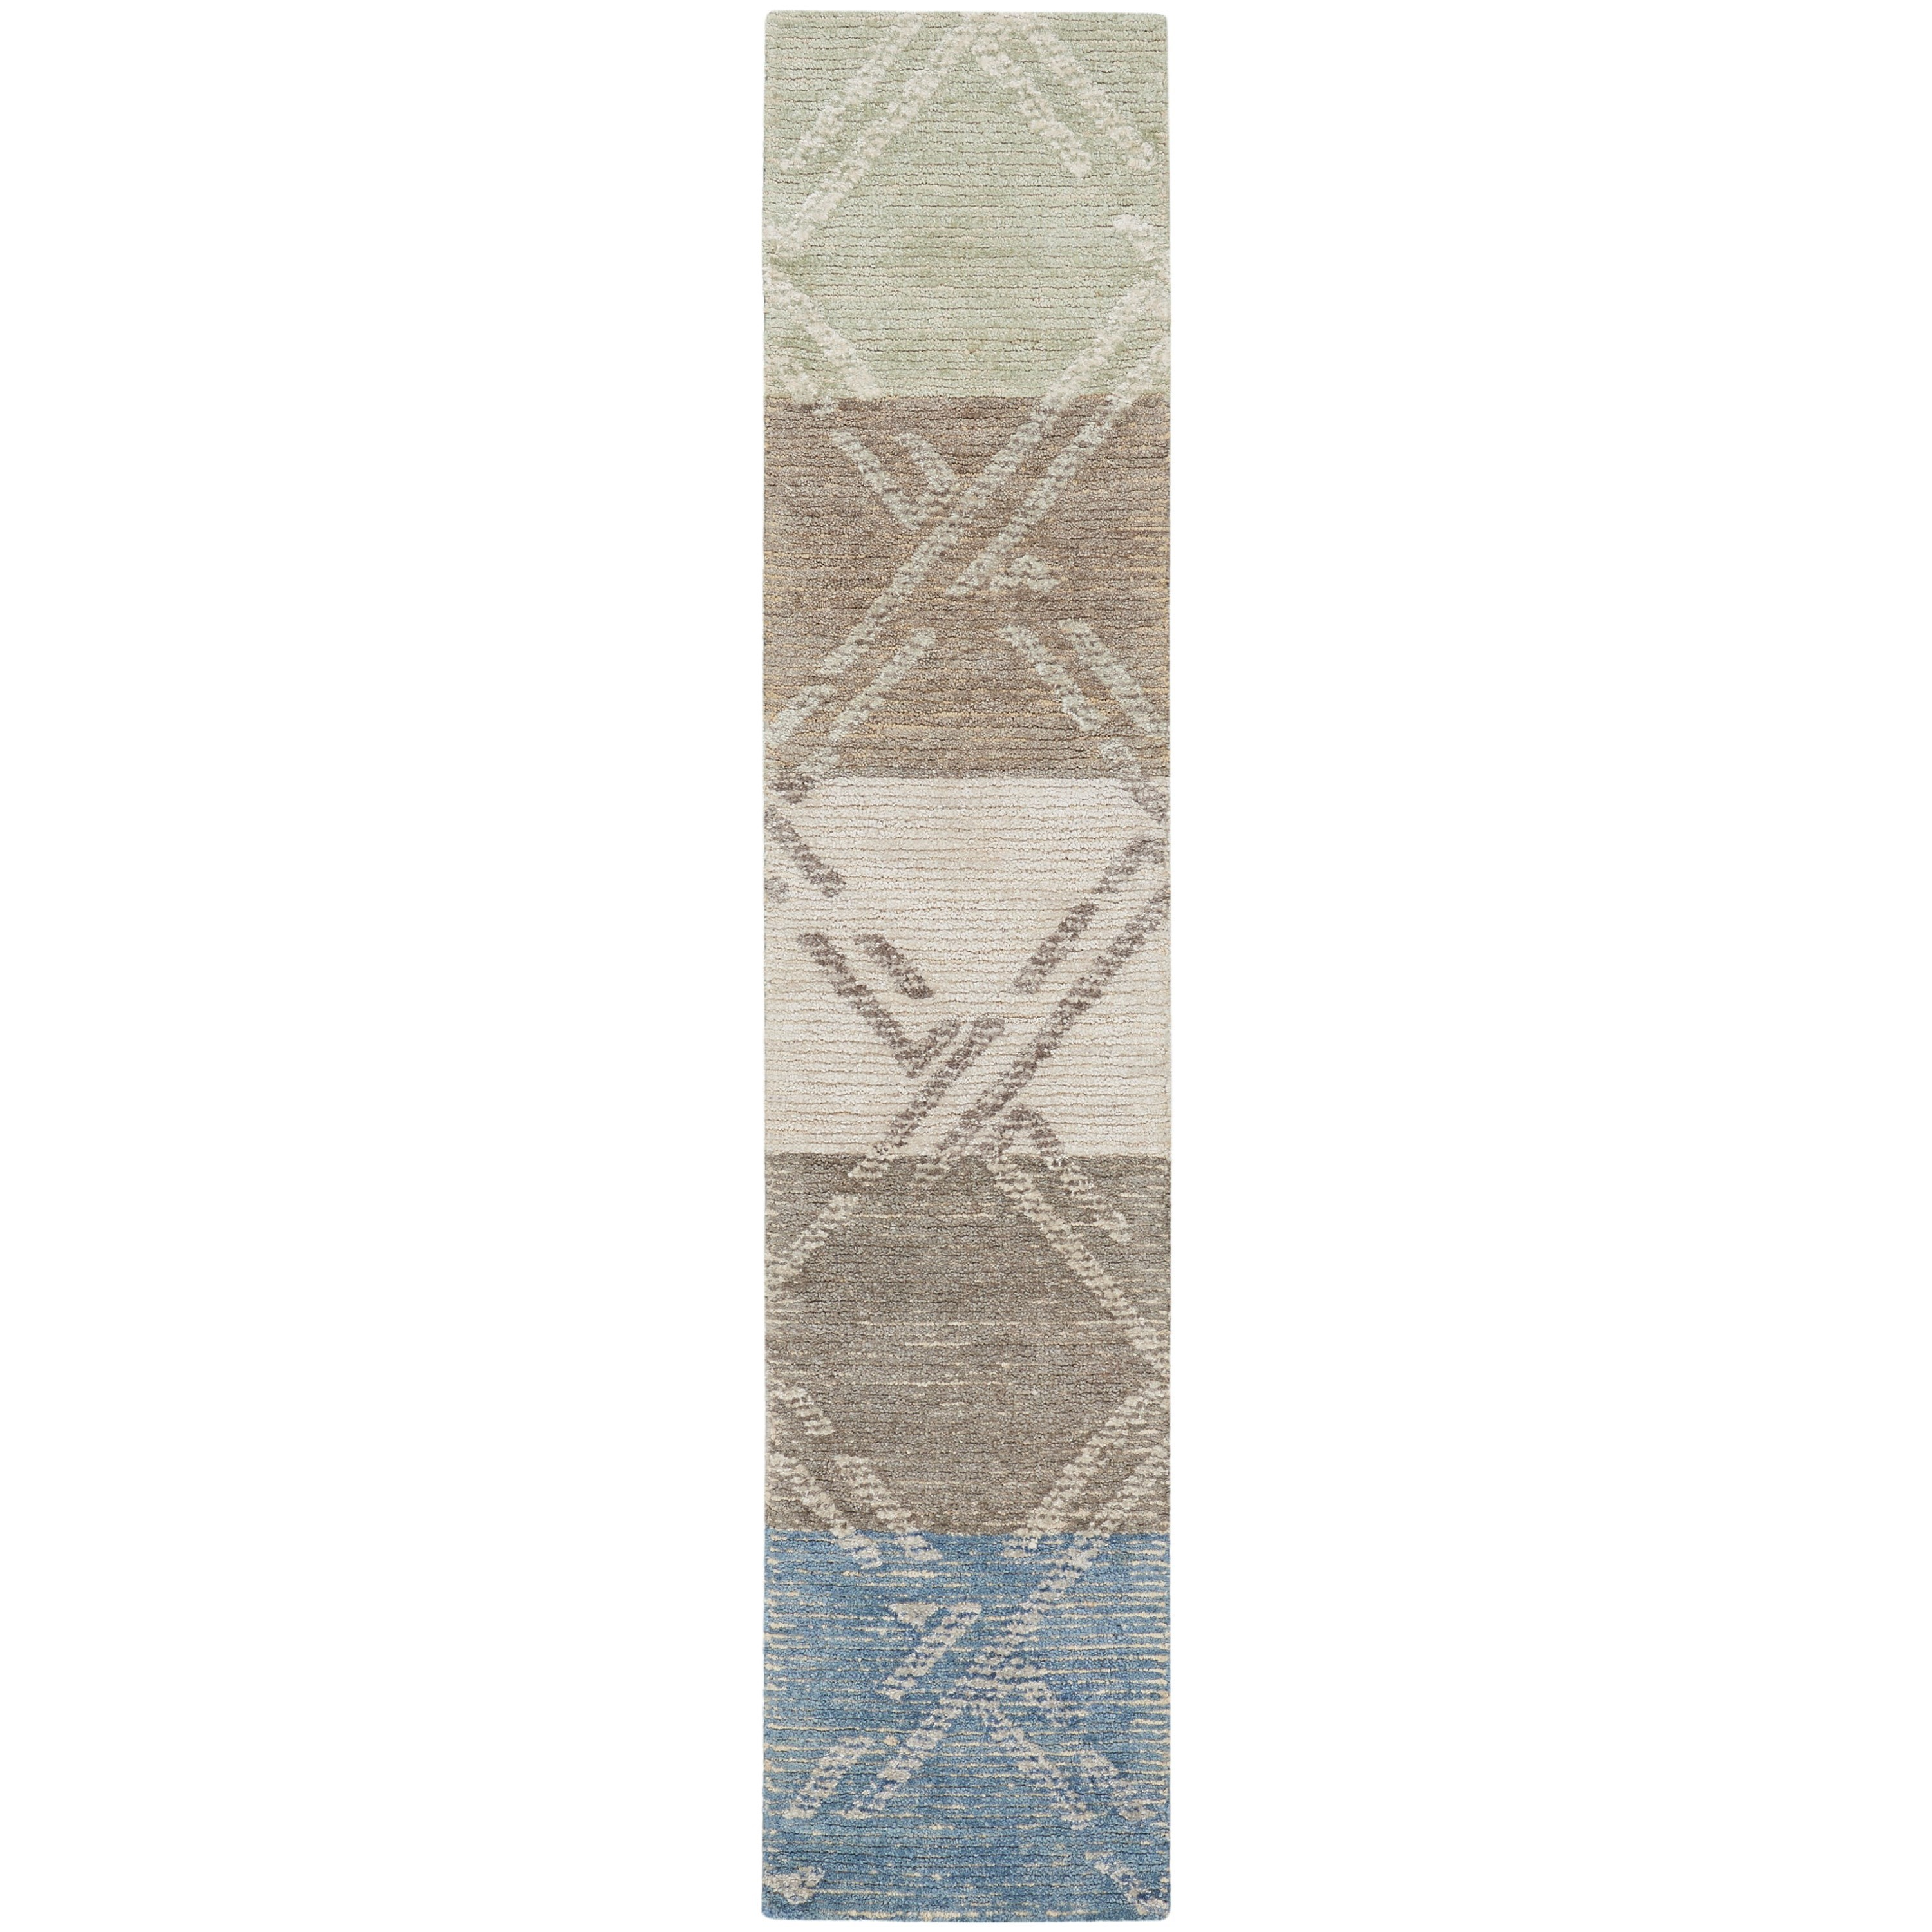 Venosa 2020 2' x 7' Rug by Nourison at Home Collections Furniture